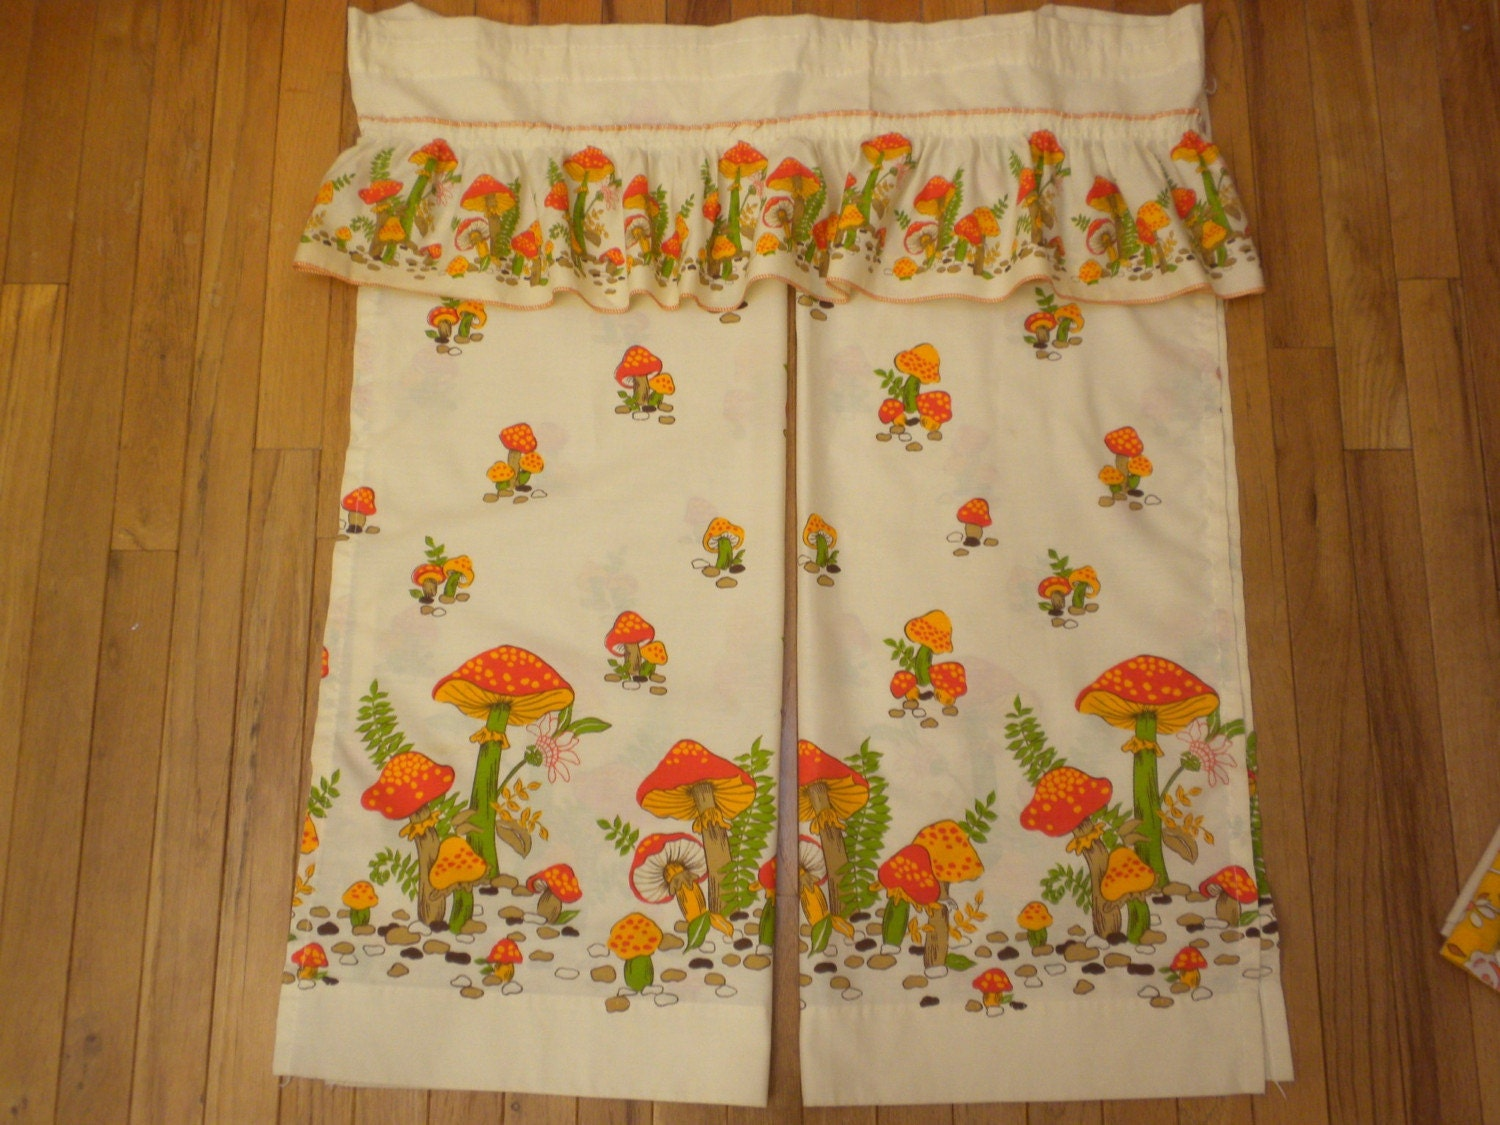 Kitchen Curtains With Mushroom Design With Valance From The